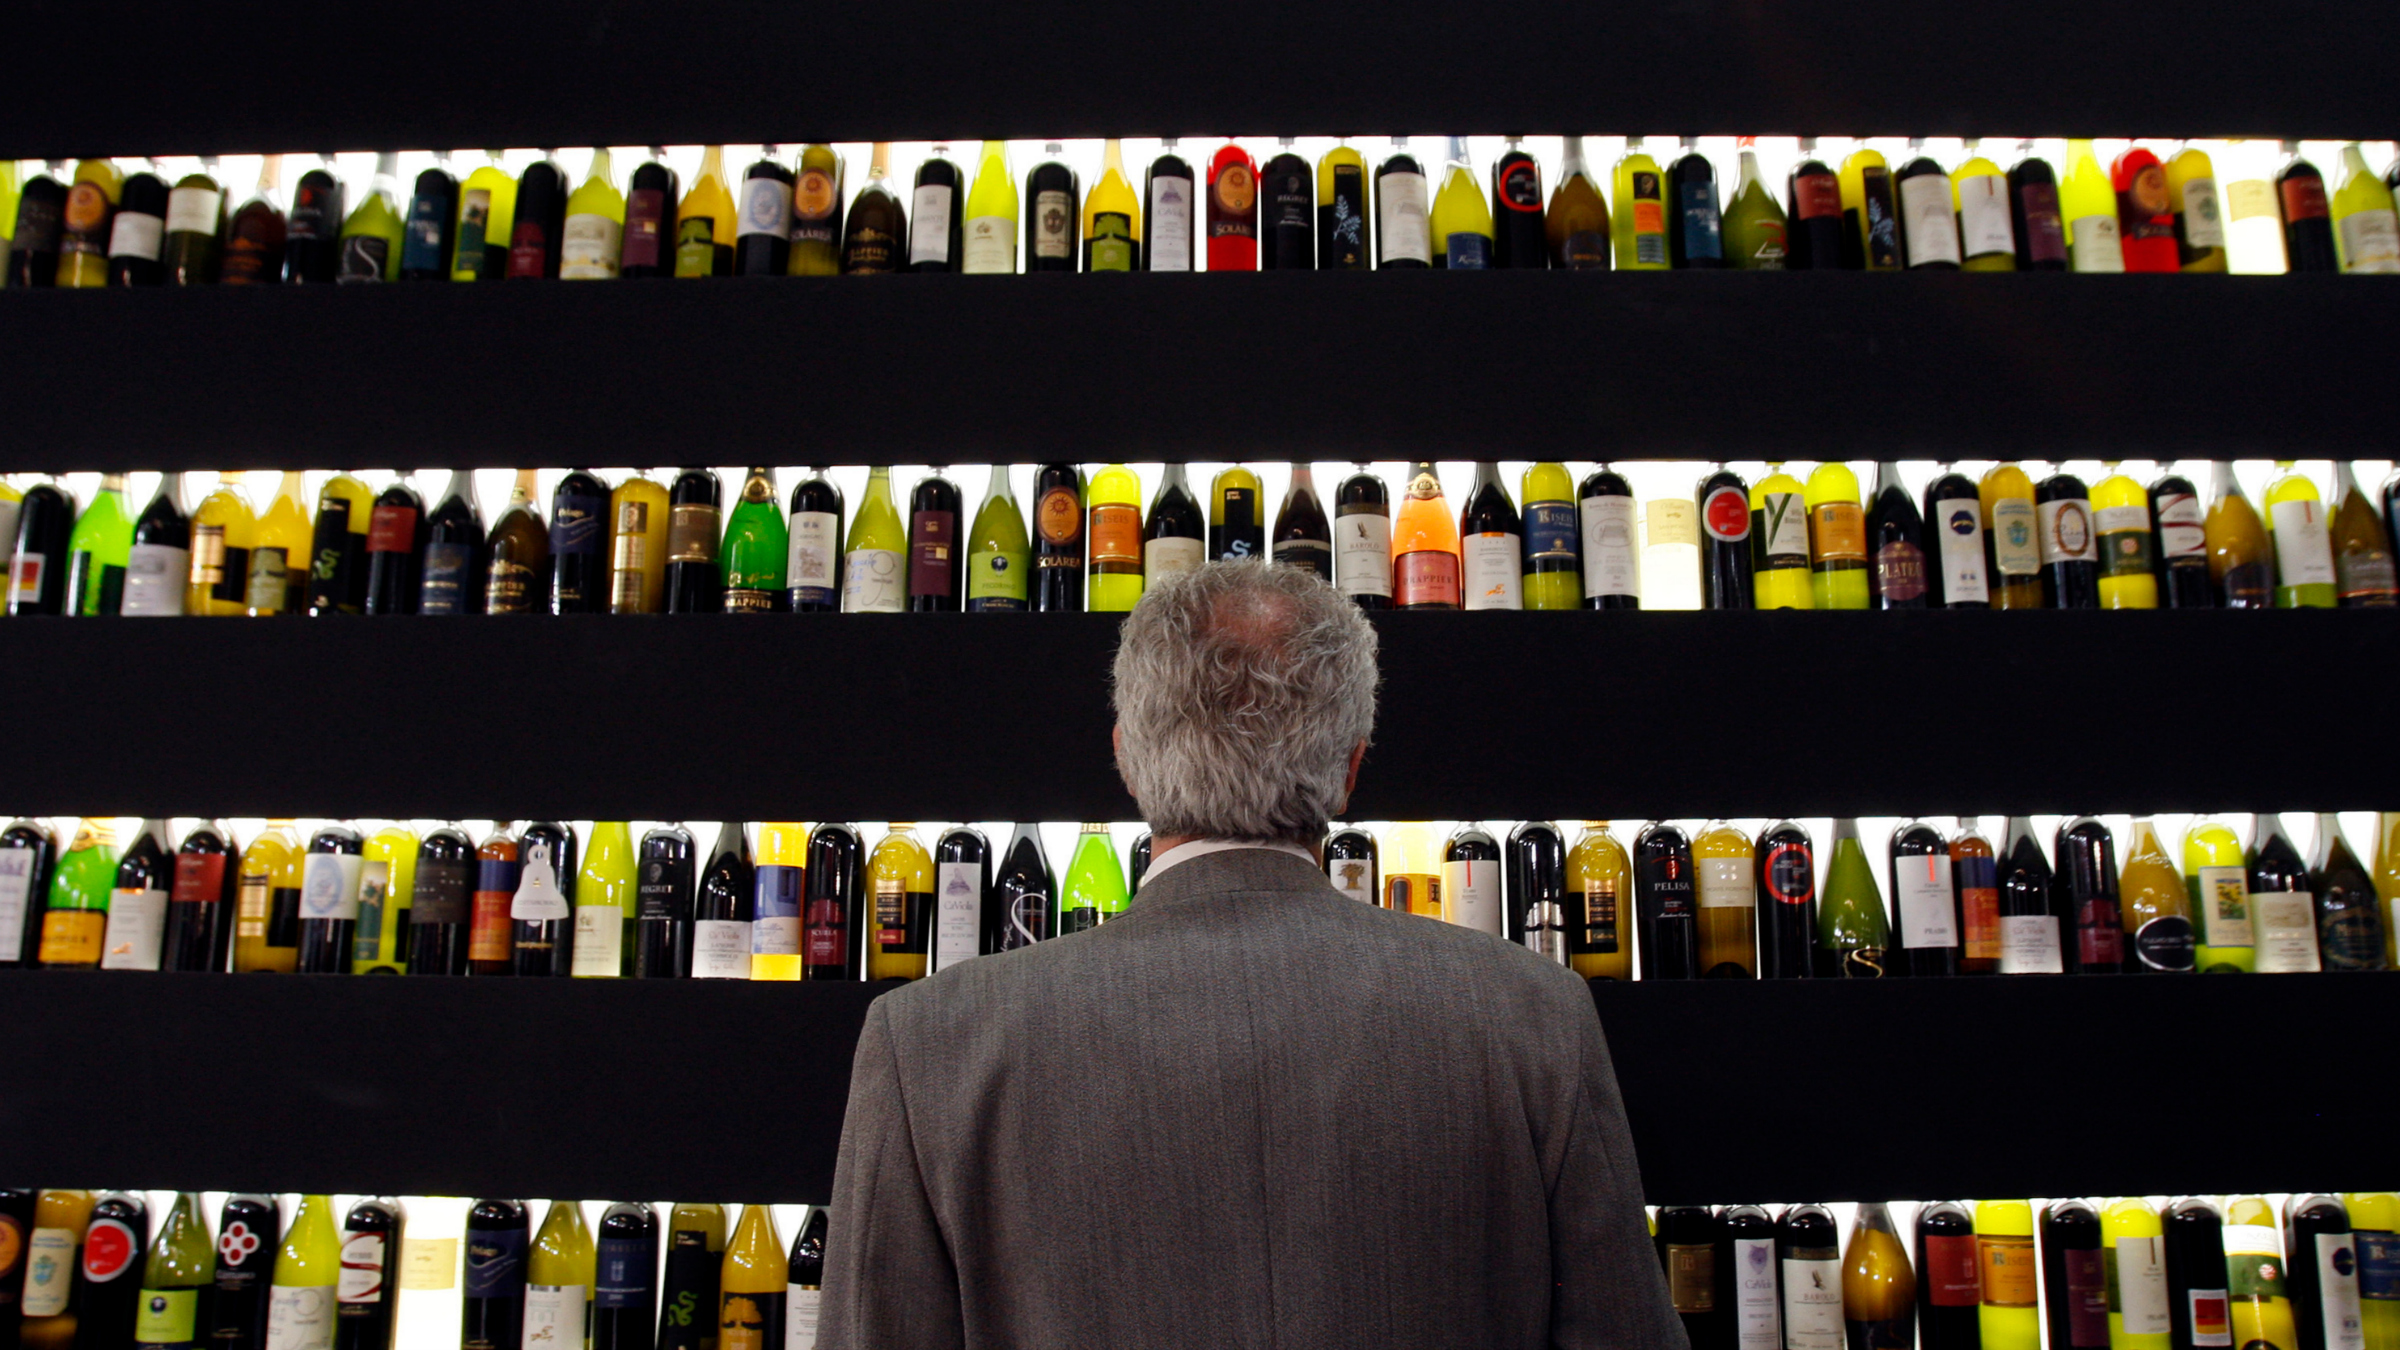 A man looks at bottles of wine on display.